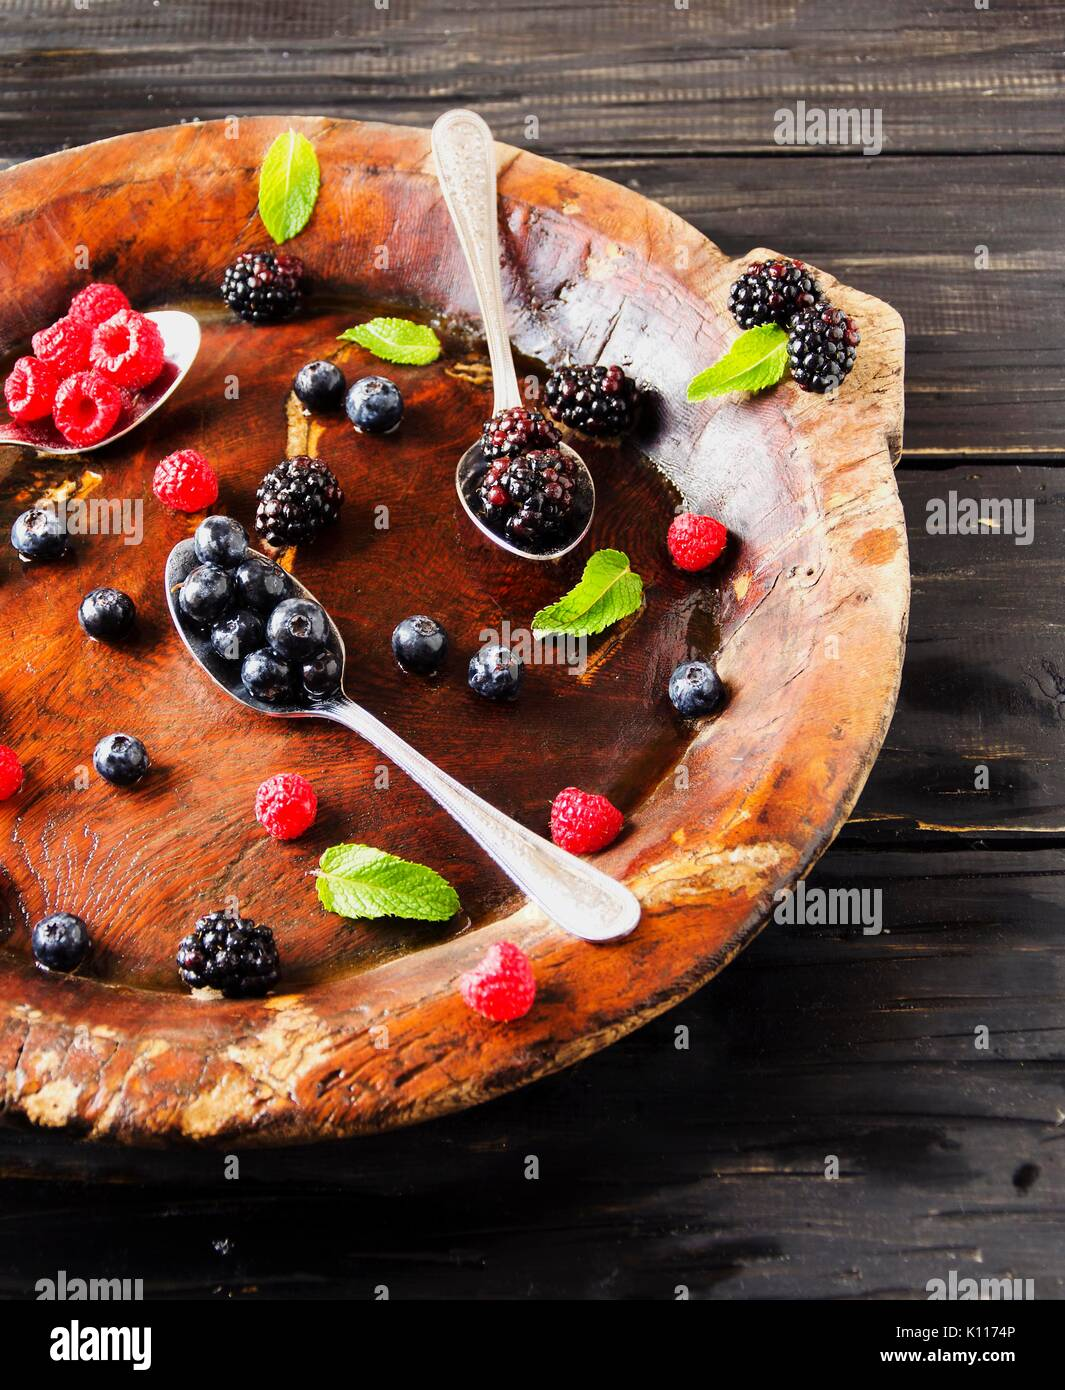 fresh ripe berries raspberries blackberries and blueberries on a brown wooden plate with a spoon on a black wooden table, rustic, selective focus, spa - Stock Image